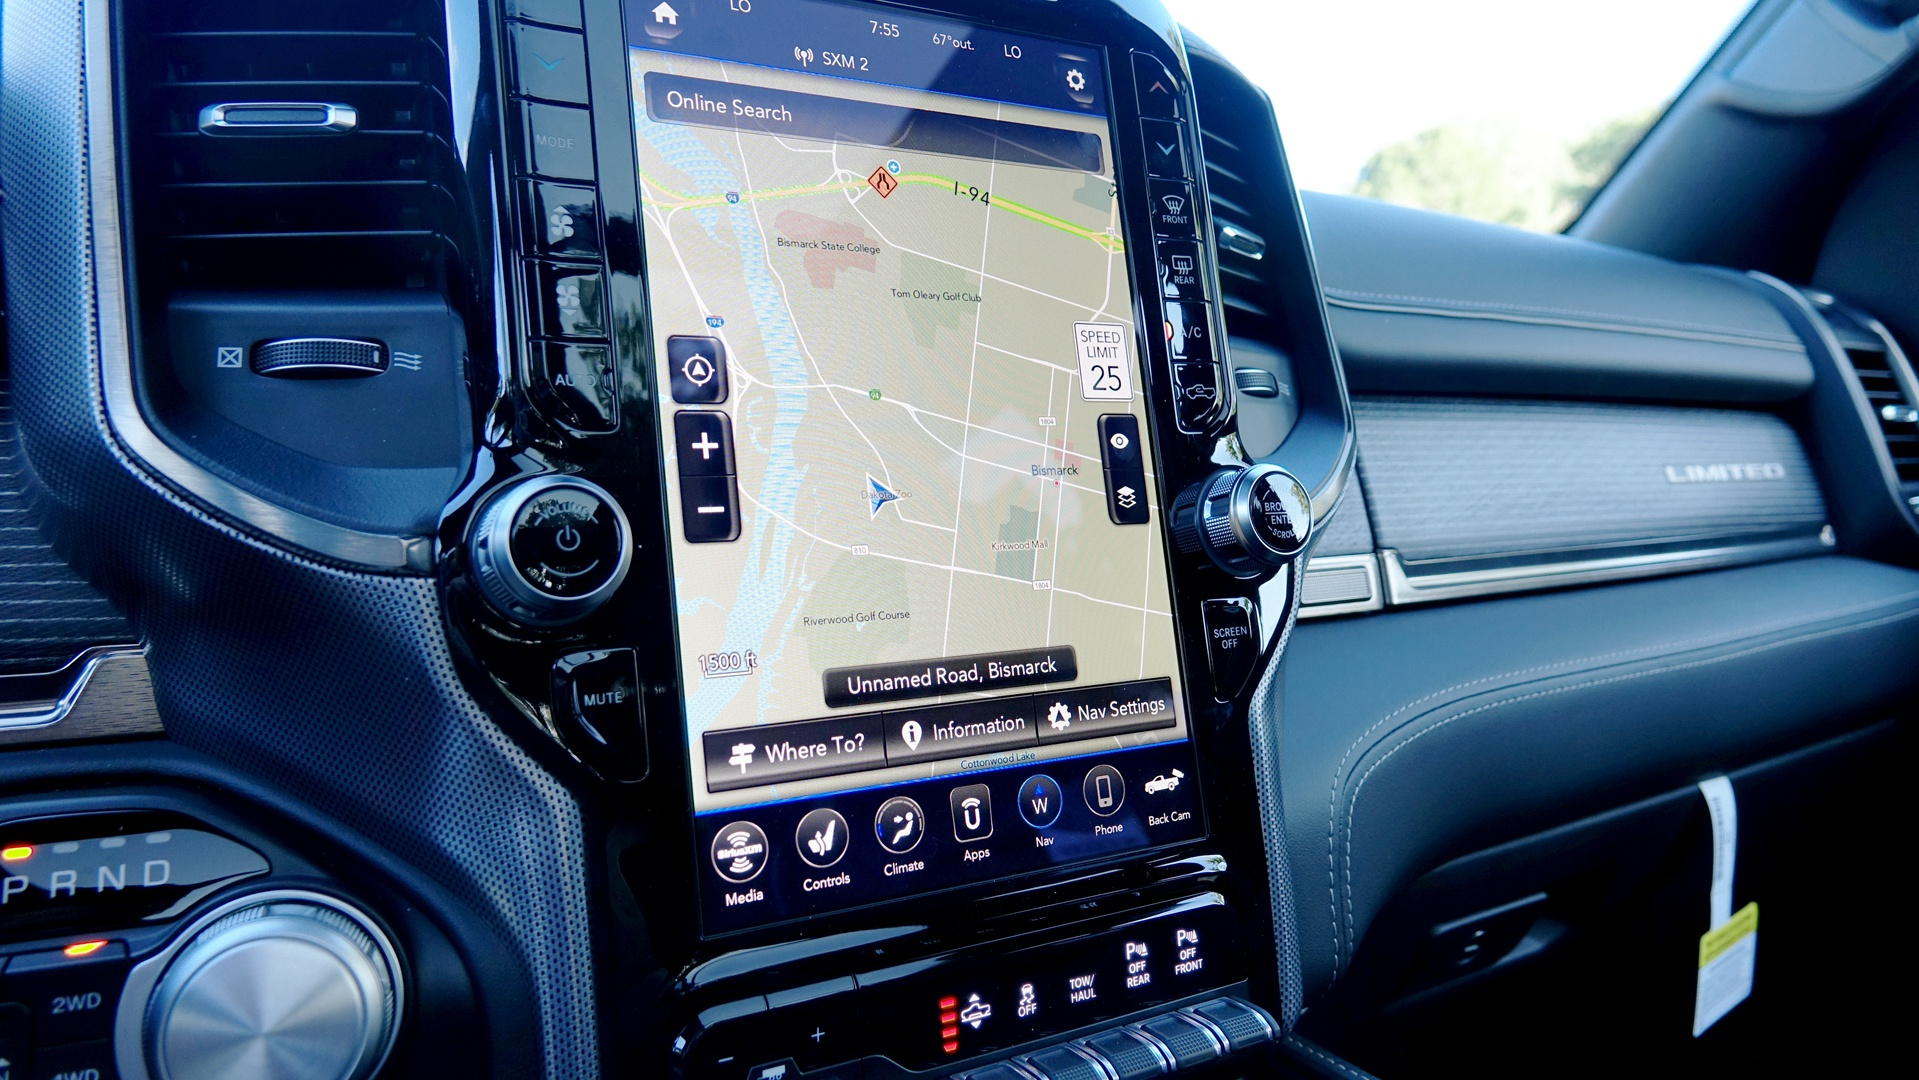 2019 Dodge RAM 1500 touch screen is best in class.